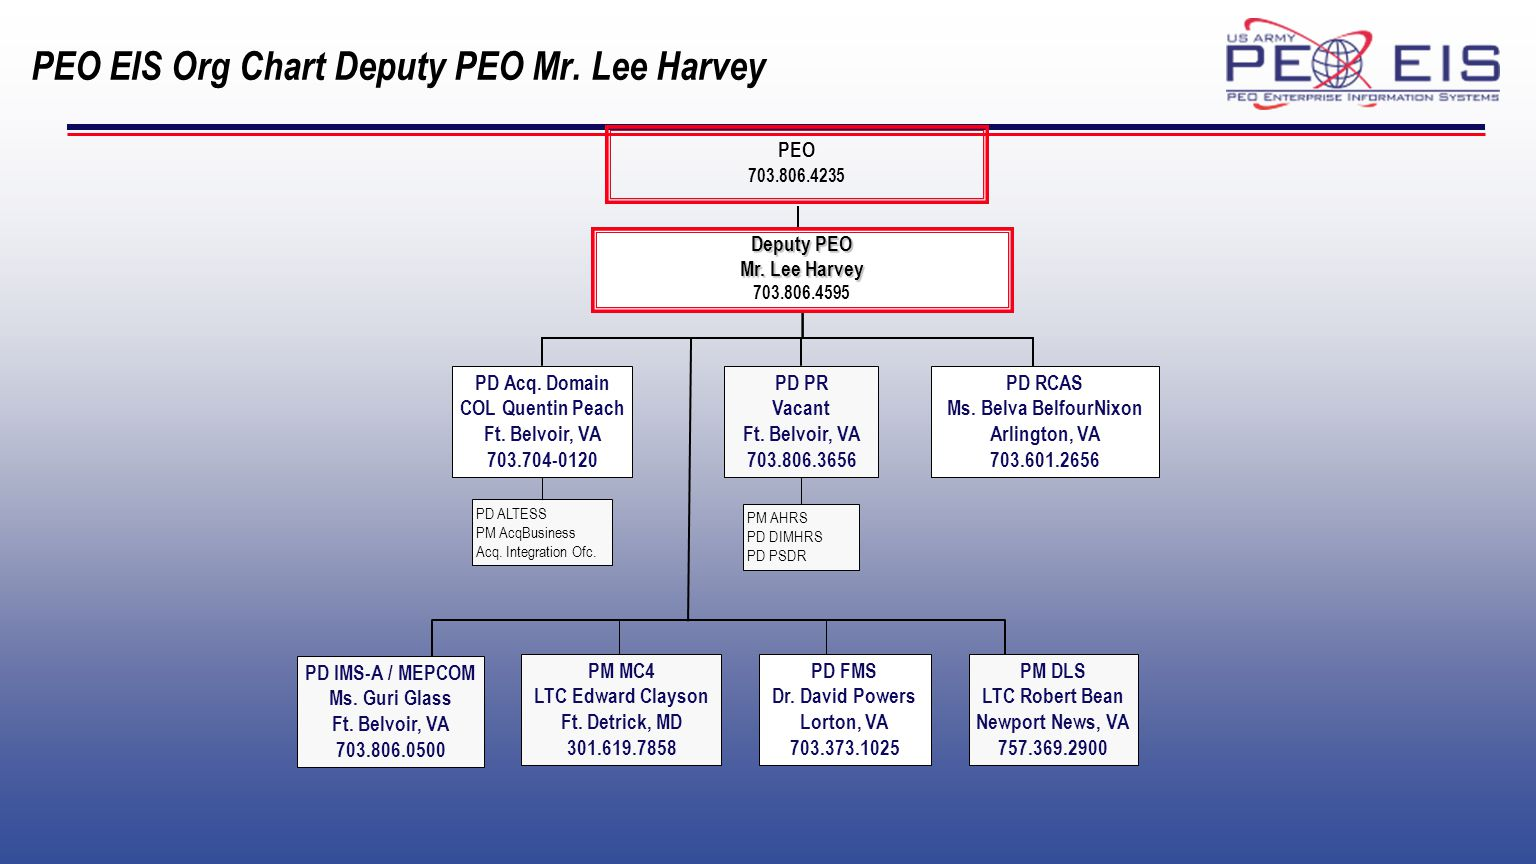 PEO EIS Org Chart Deputy PEO Mr. Lee Harvey